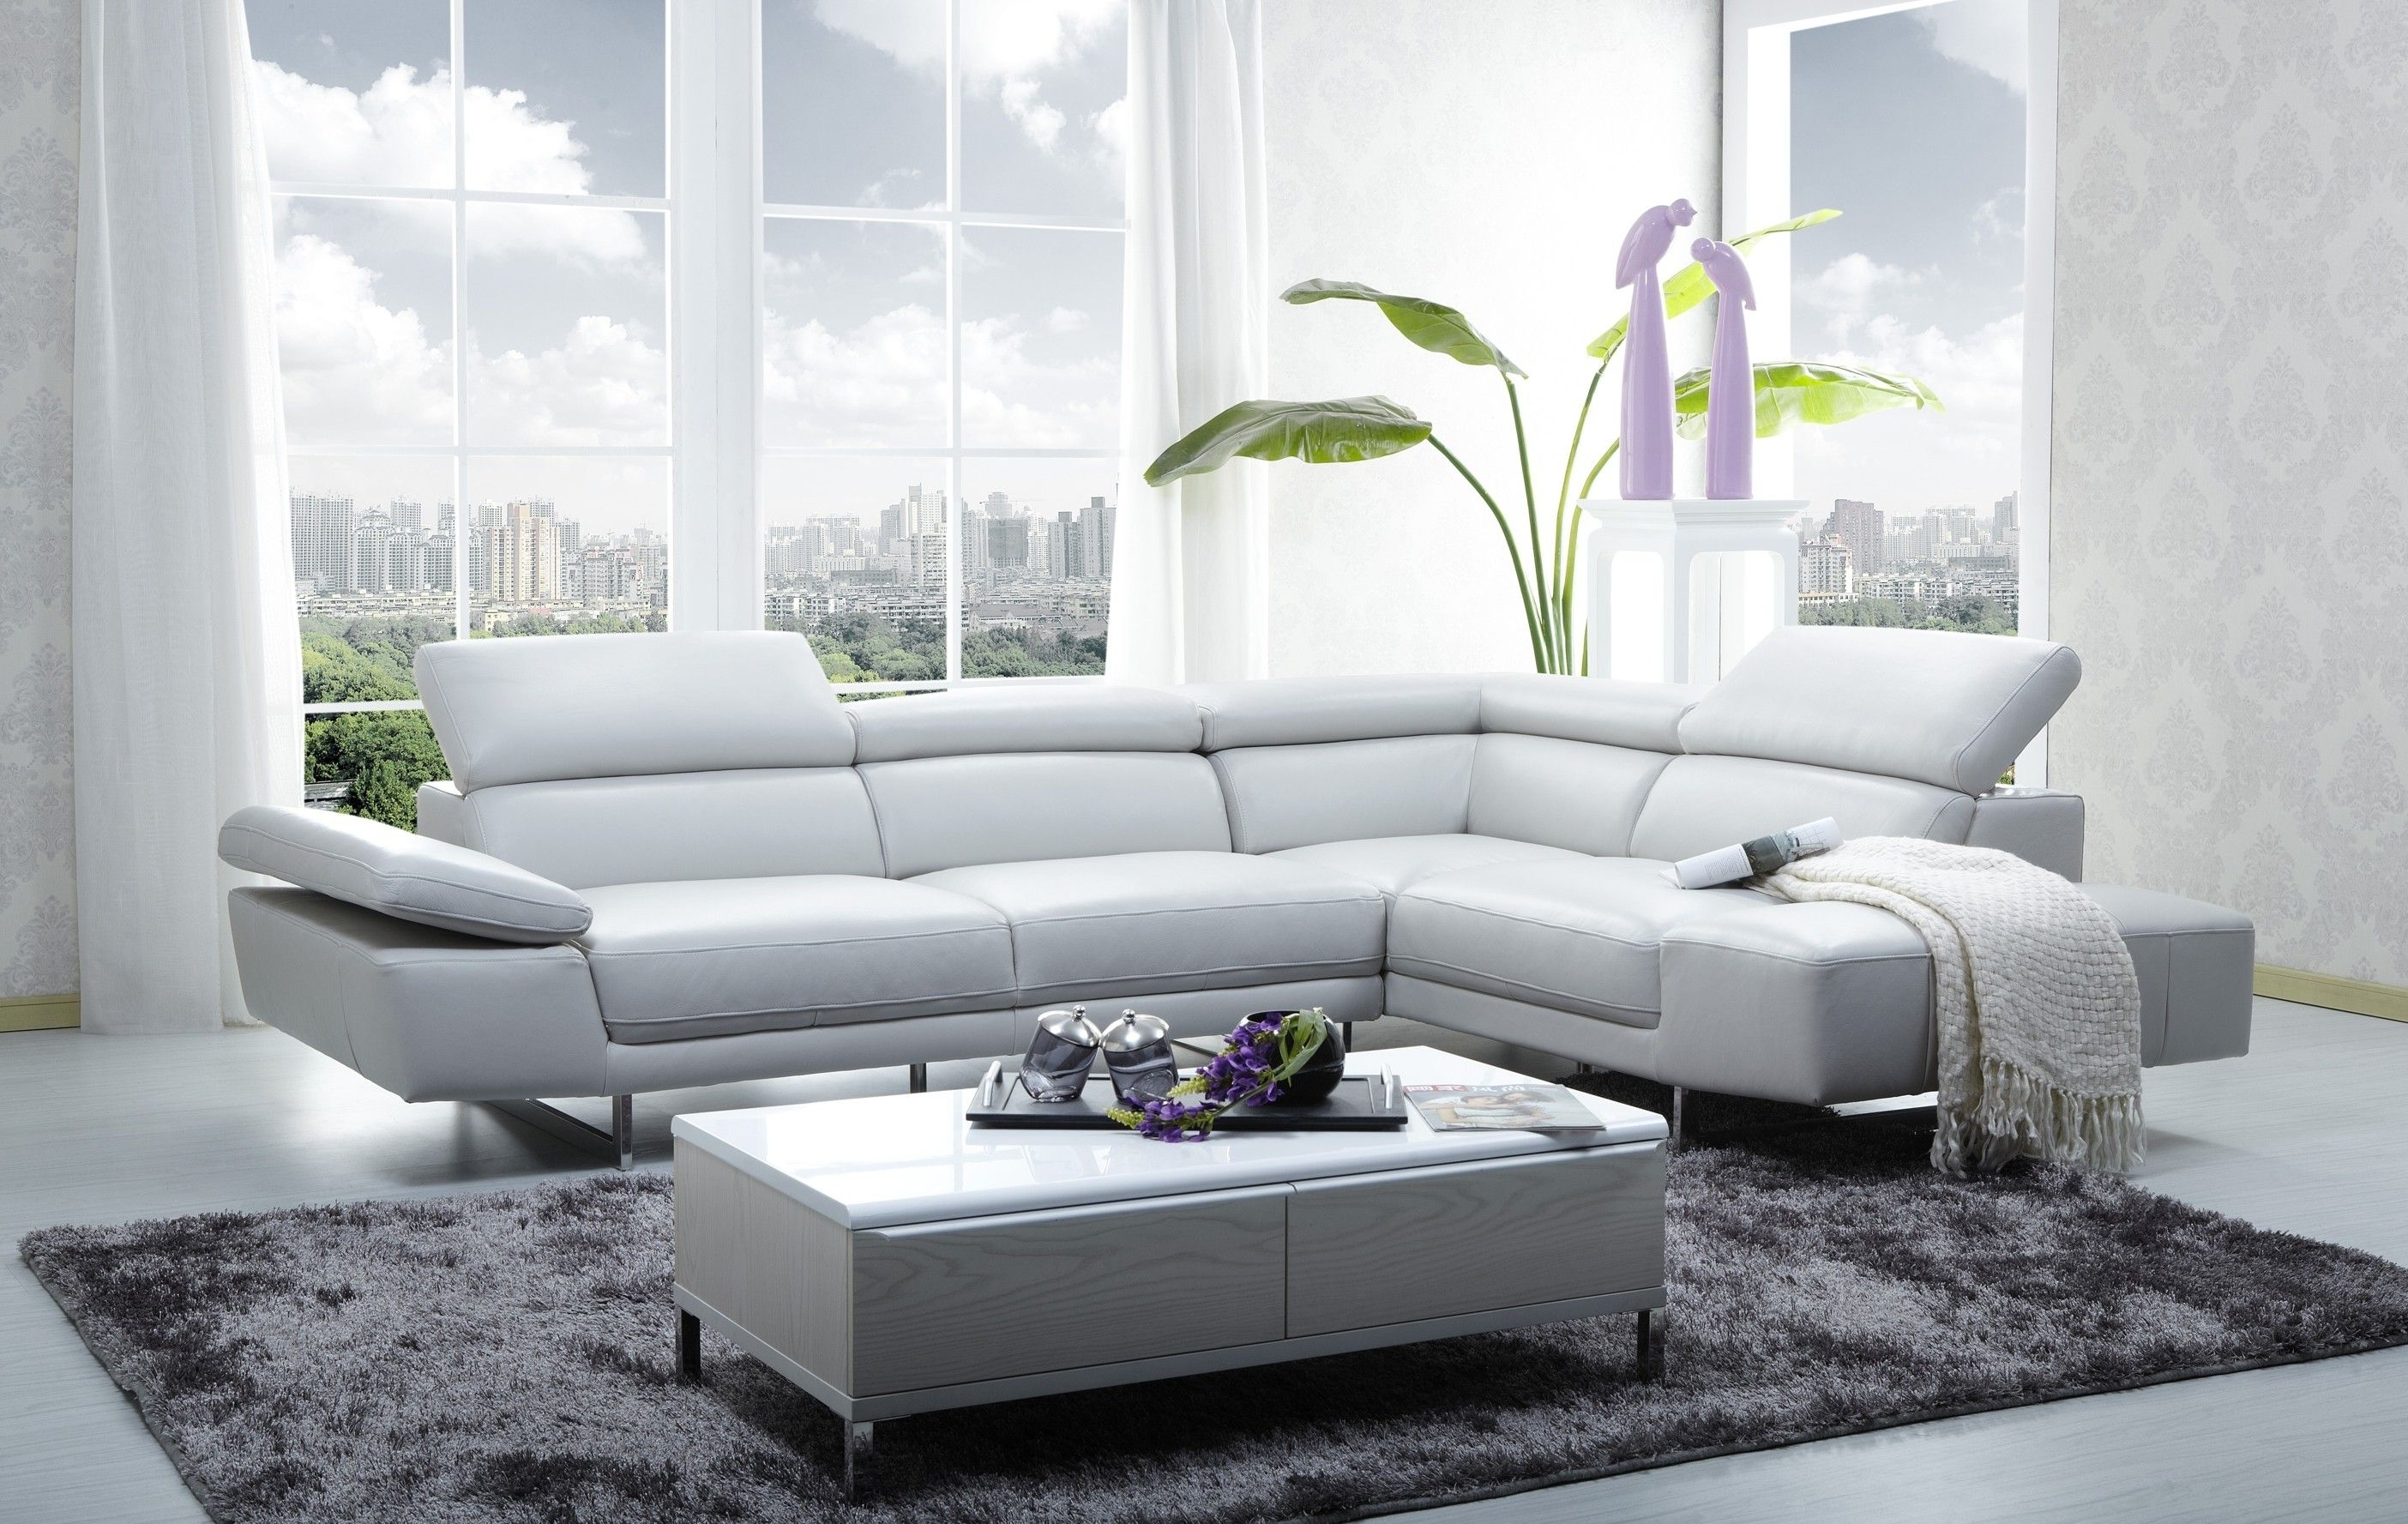 2019 Cool Sectional Sofas Chicago Luxury 44 Throughout At